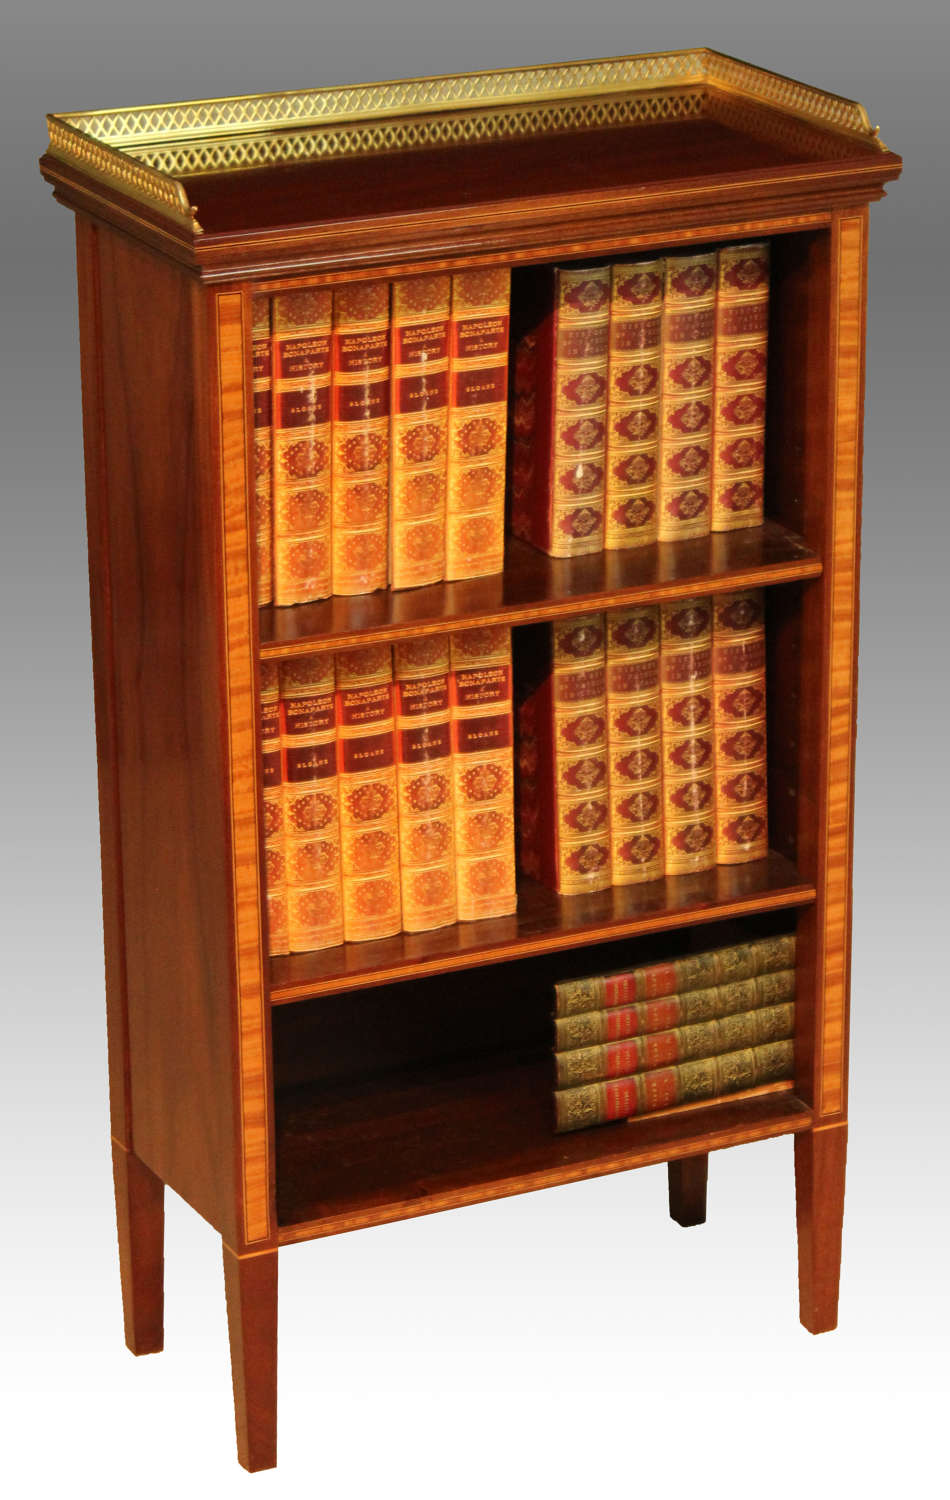 A Fine Quality Edwardian Mahogany Inlaid Open Bookcase